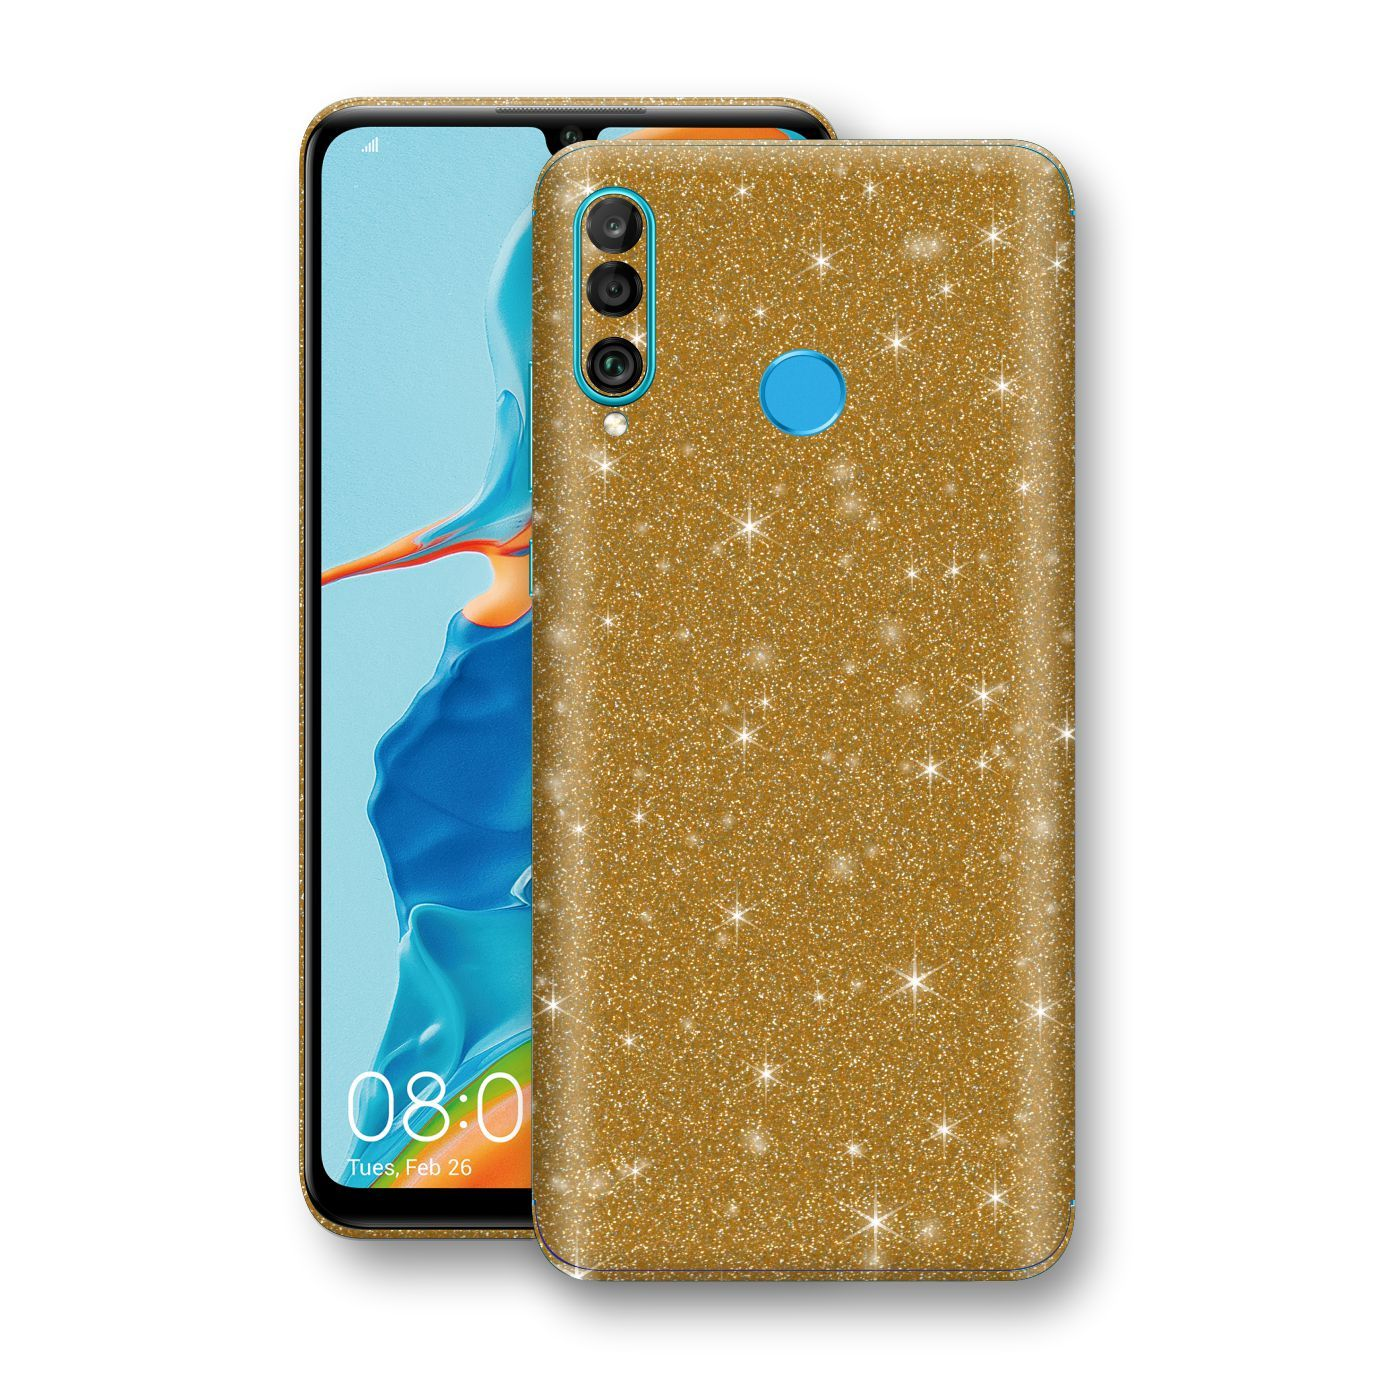 Huawei P30 LITE Diamond Gold Shimmering, Sparkling, Glitter Skin, Decal, Wrap, Protector, Cover by EasySkinz | EasySkinz.com